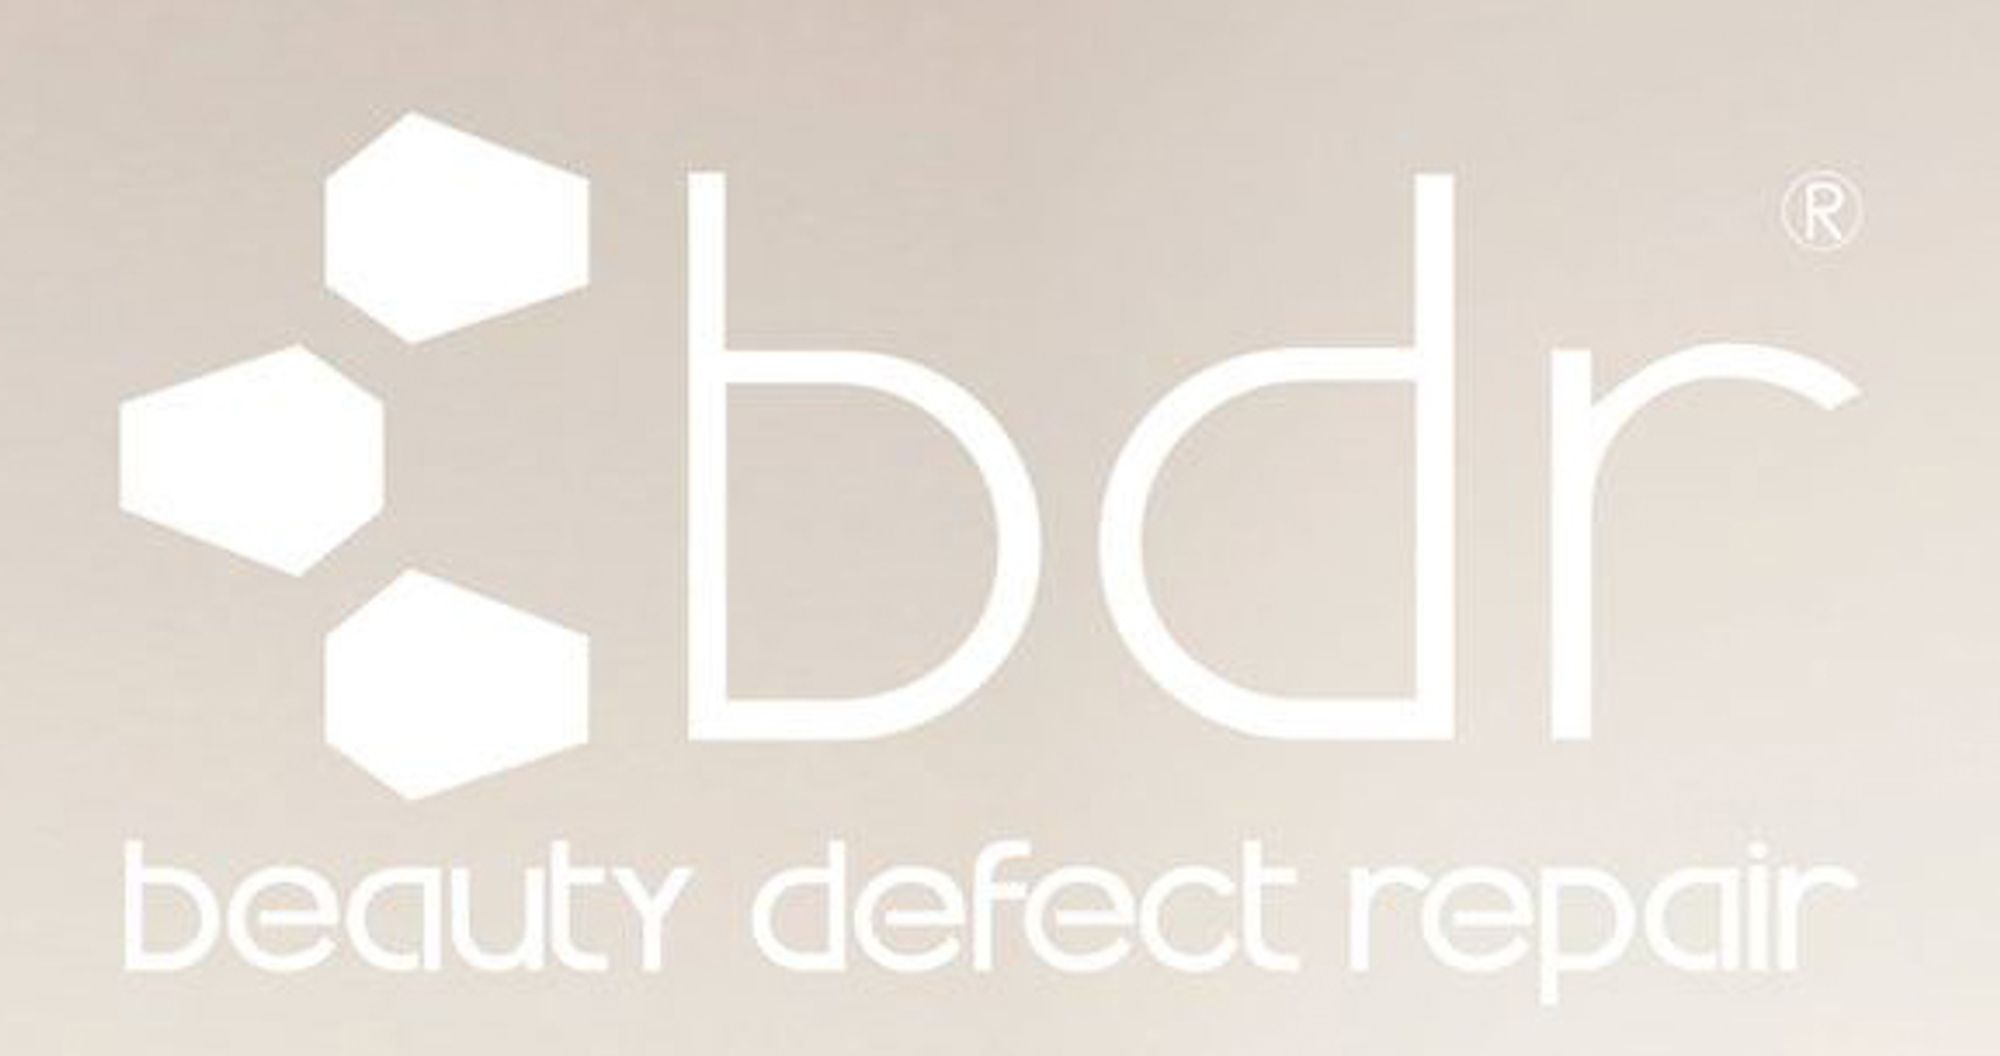 What is BDR?